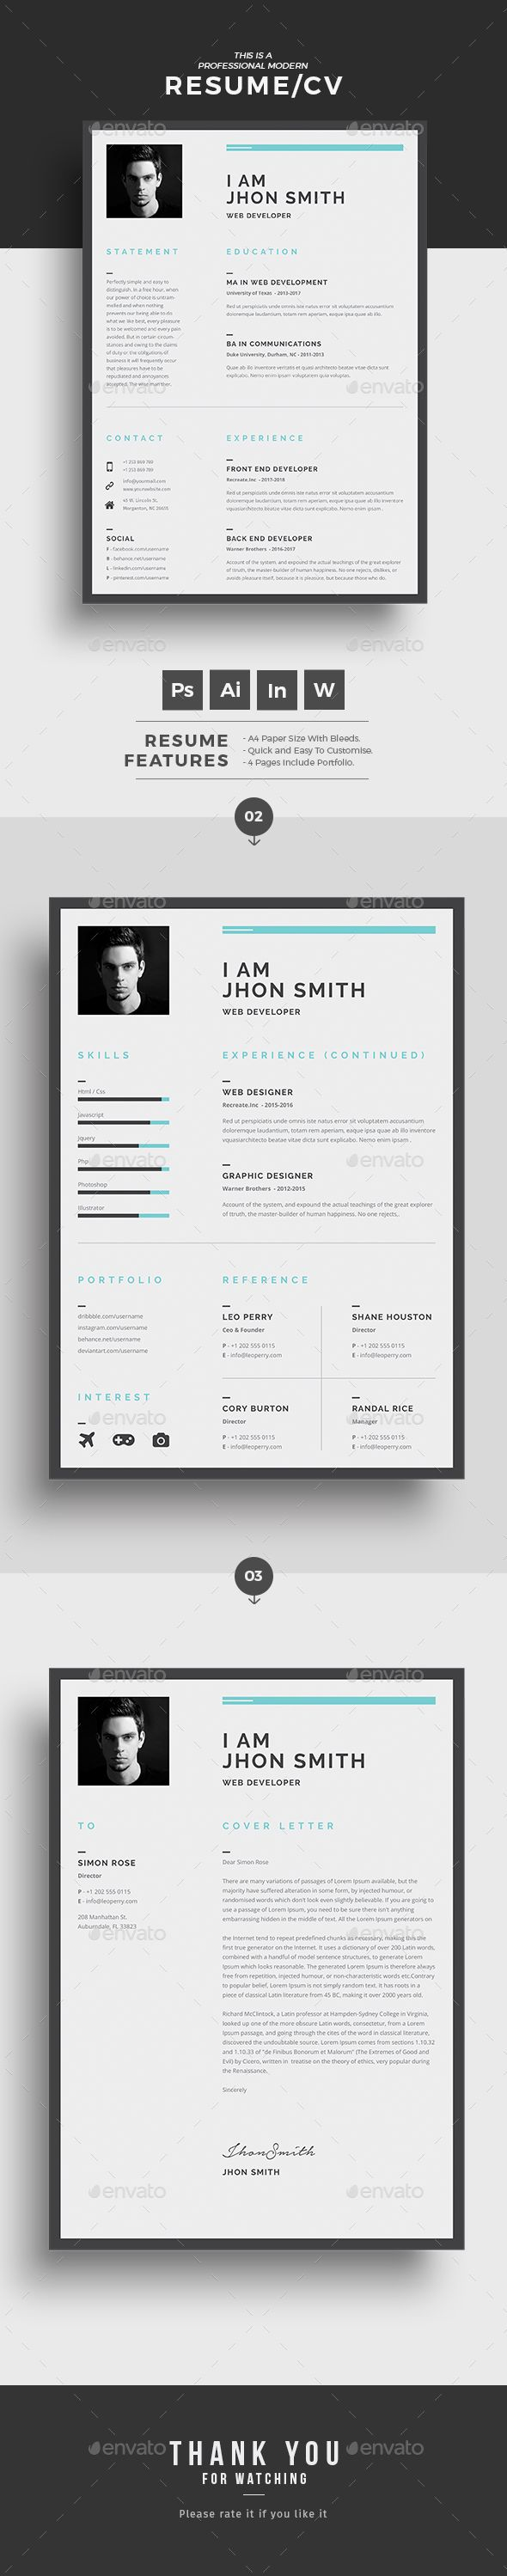 Resume  Cv Template Resume Cv And Photoshop Illustrator